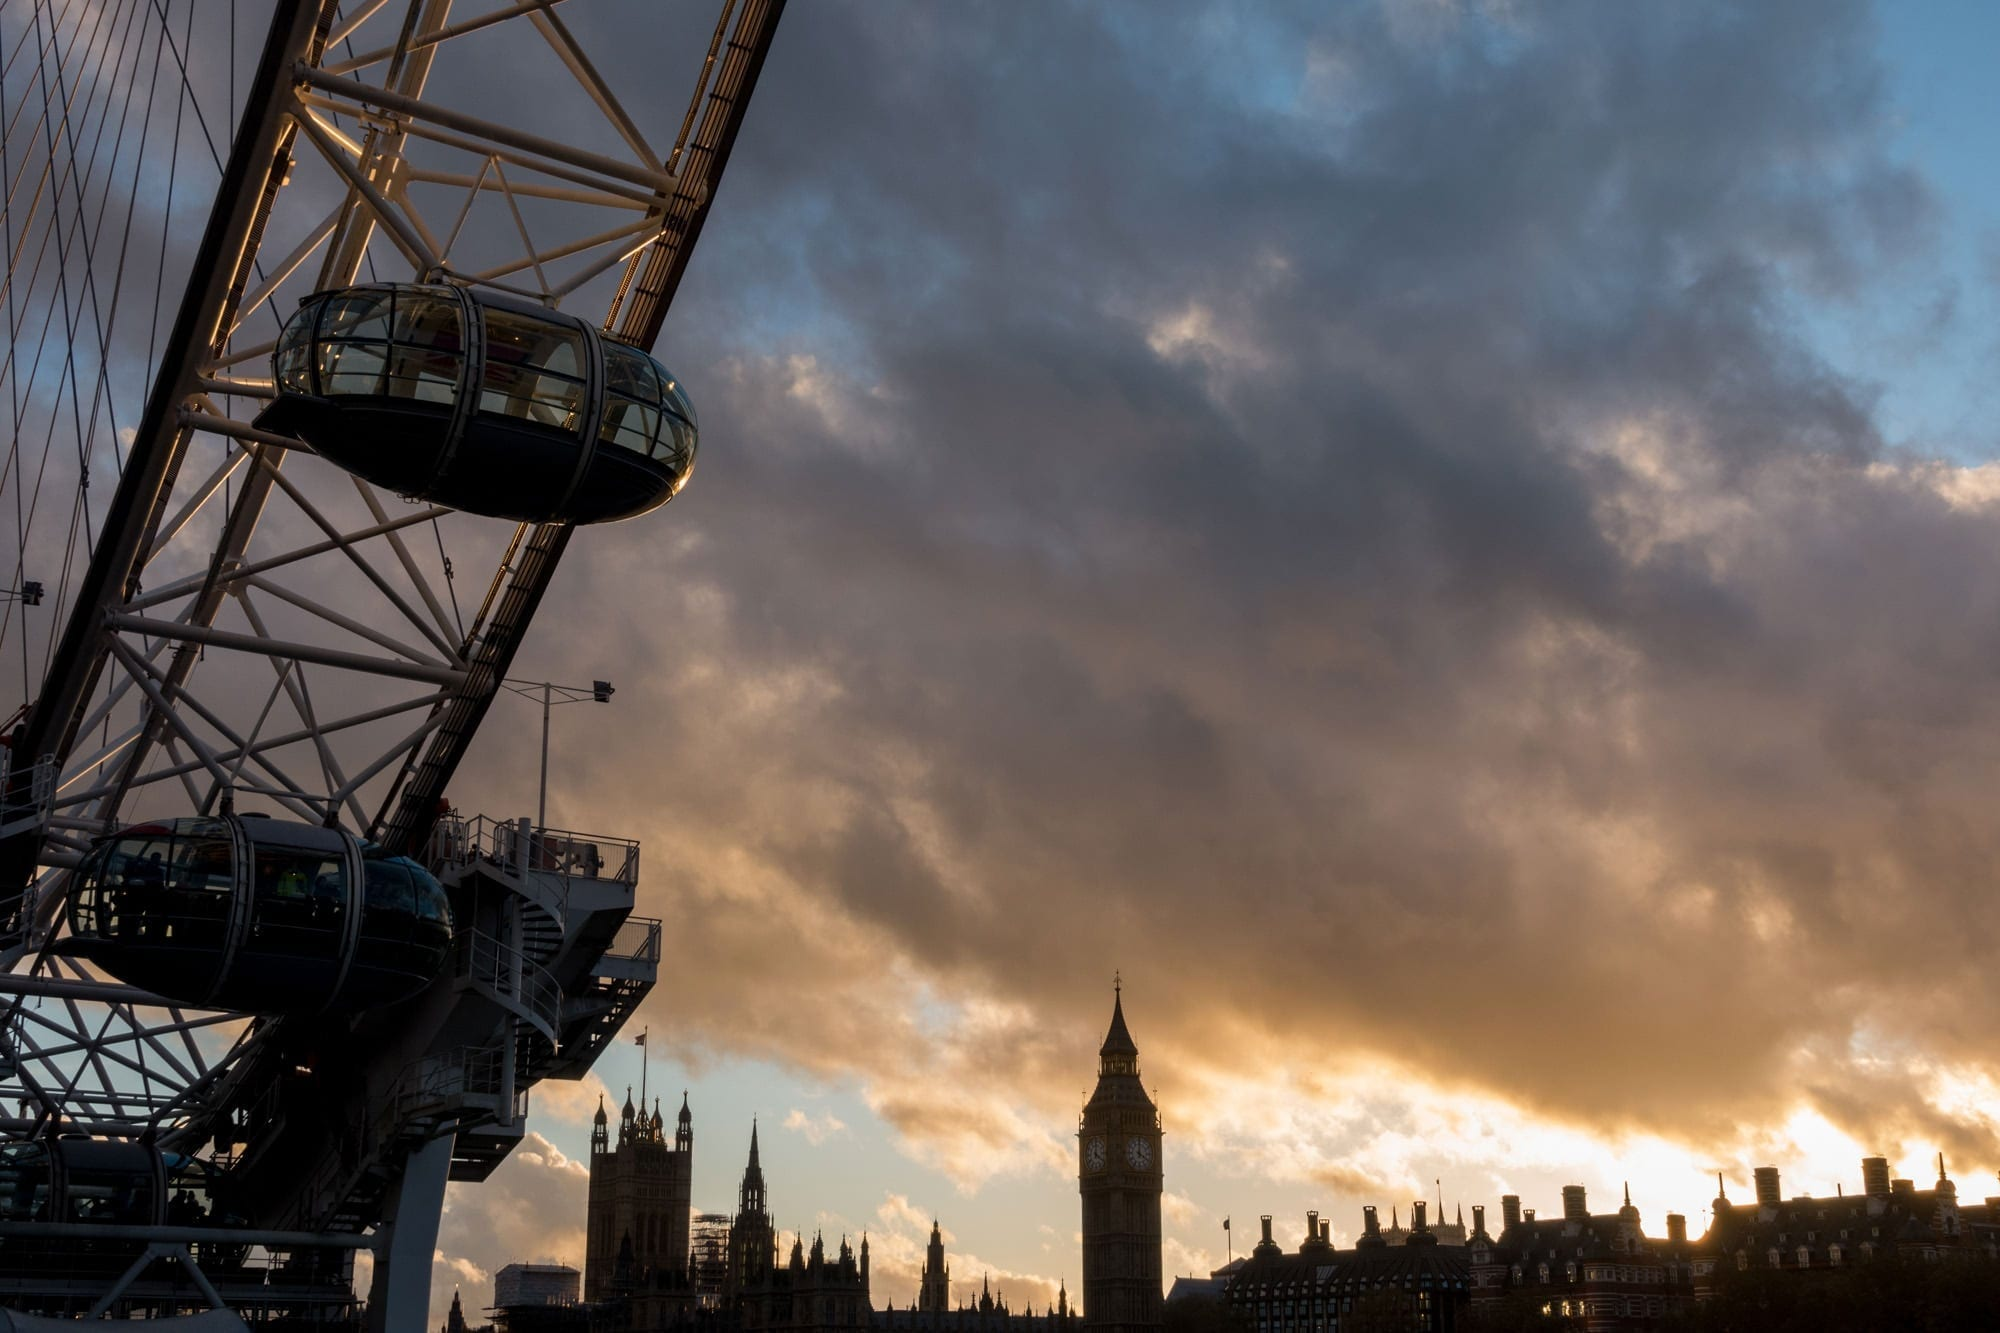 London Eye and Big Ben Sunset - London Photography